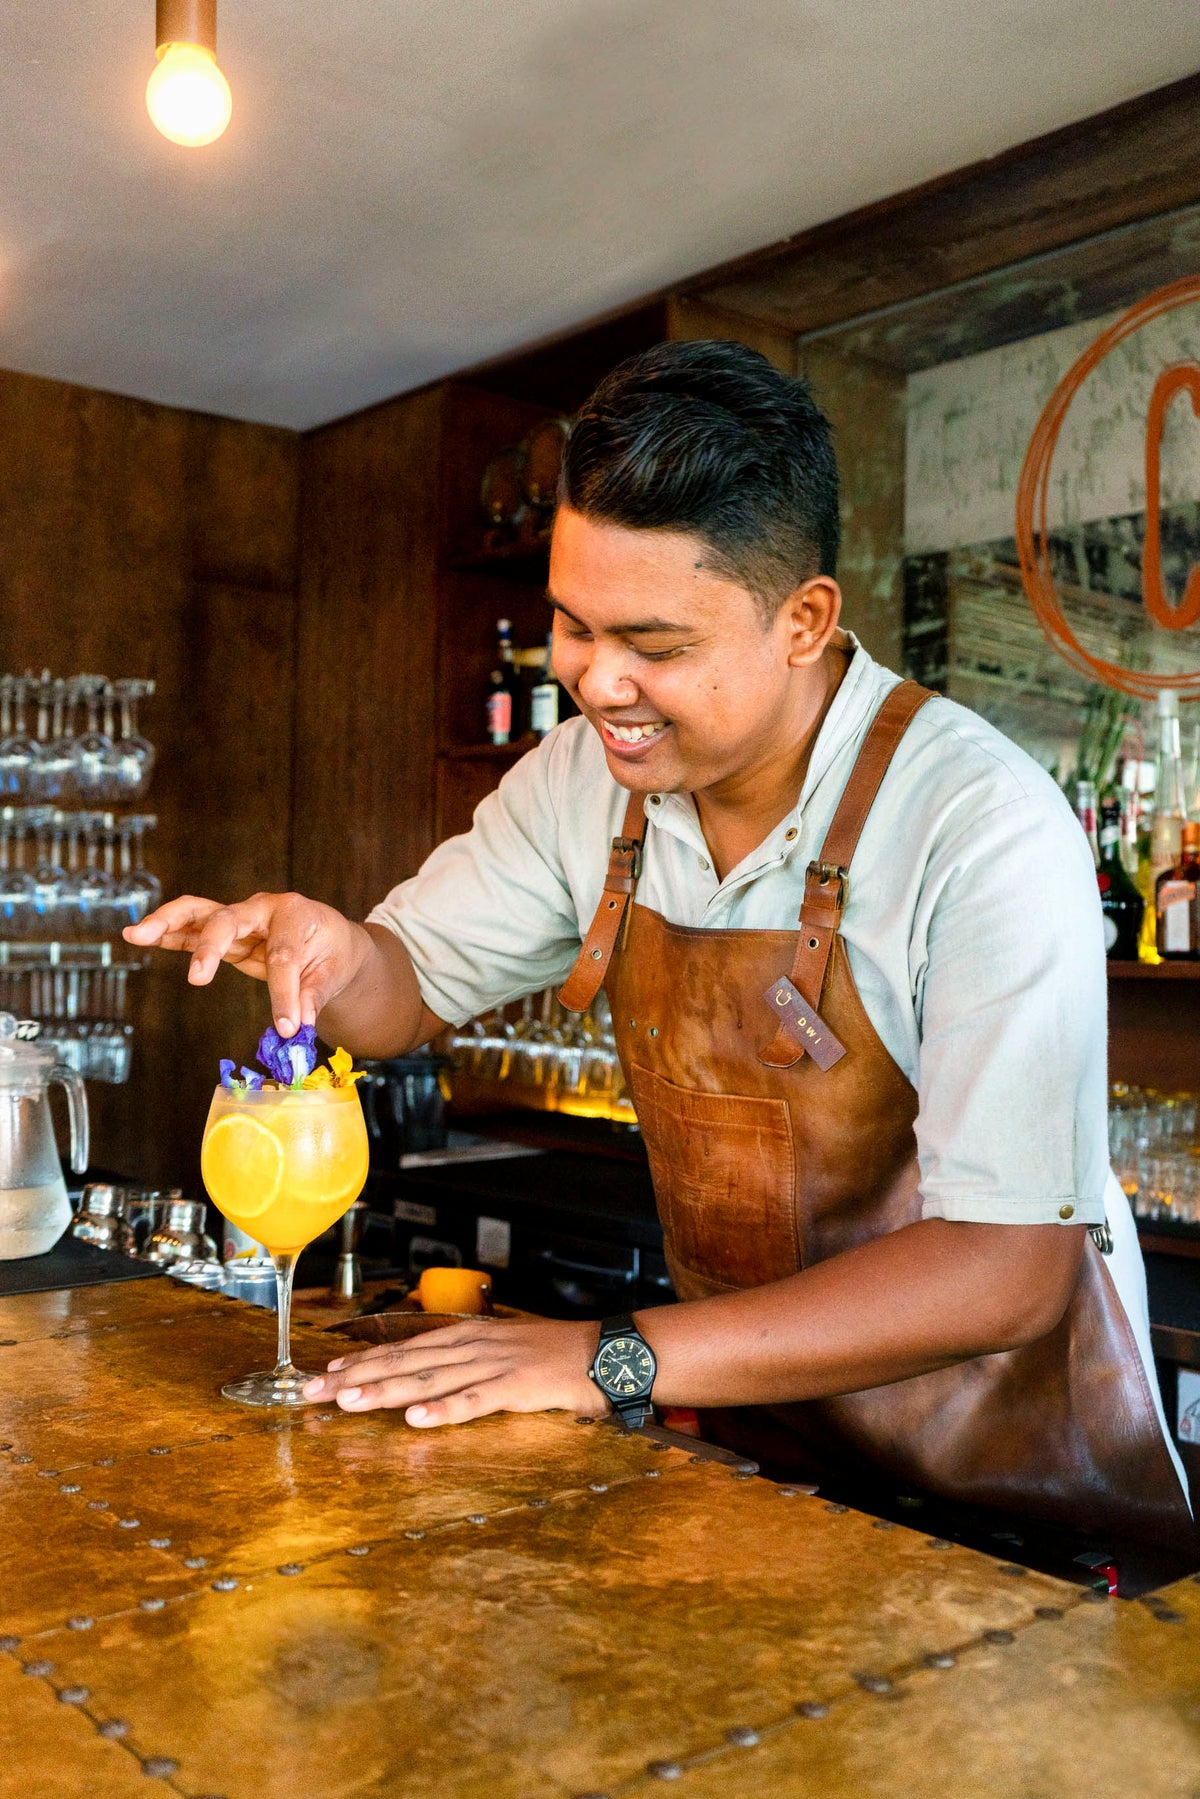 Bisma Eight, Bali - bartender shaking a drink at a bar